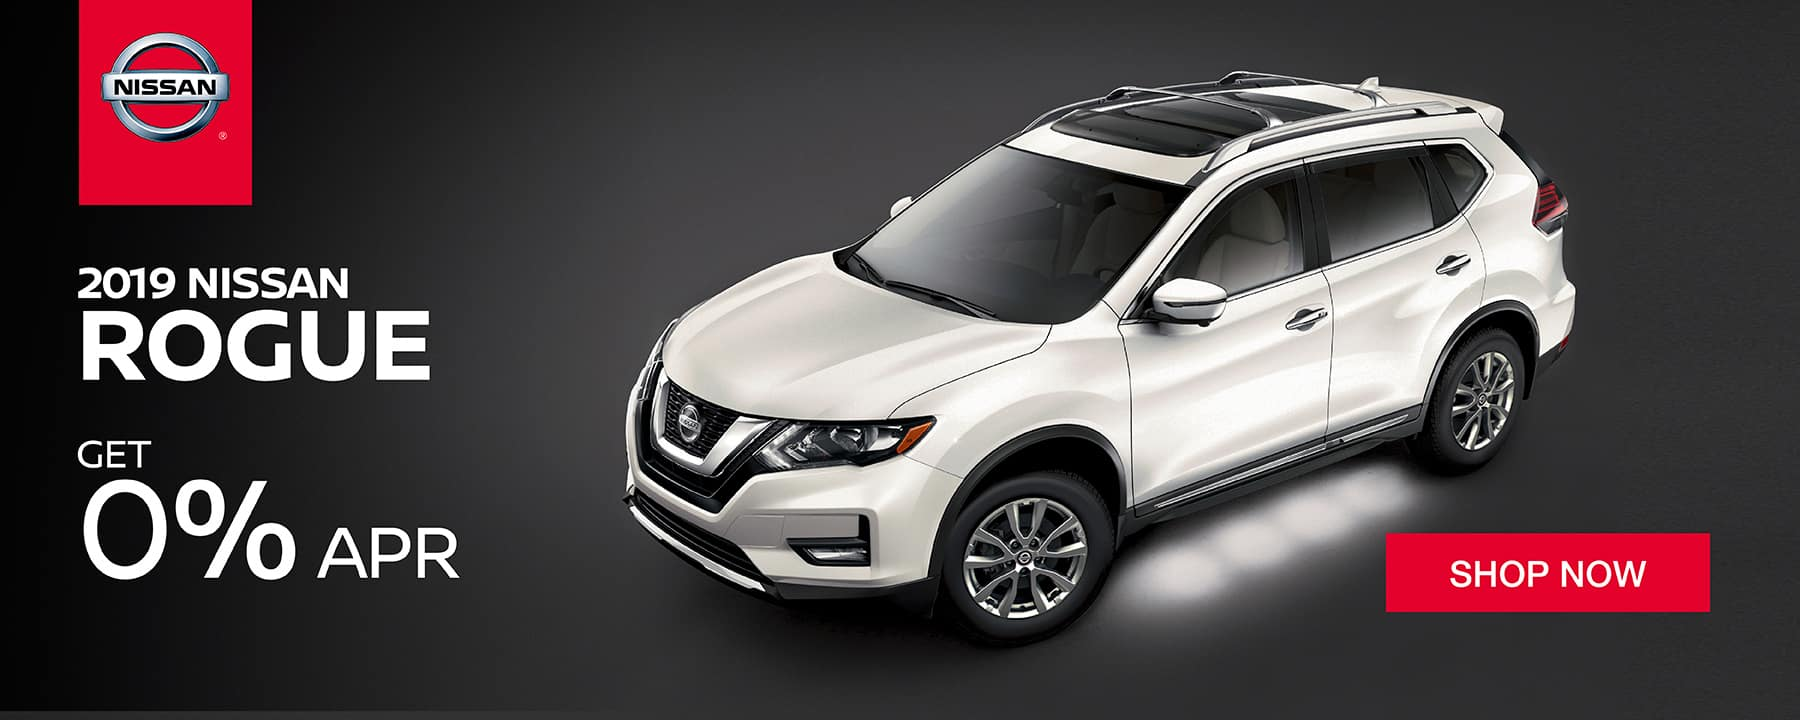 Get 0% APR Financing on the 2019 Nissan Rogue available NOW at Star Nissan!